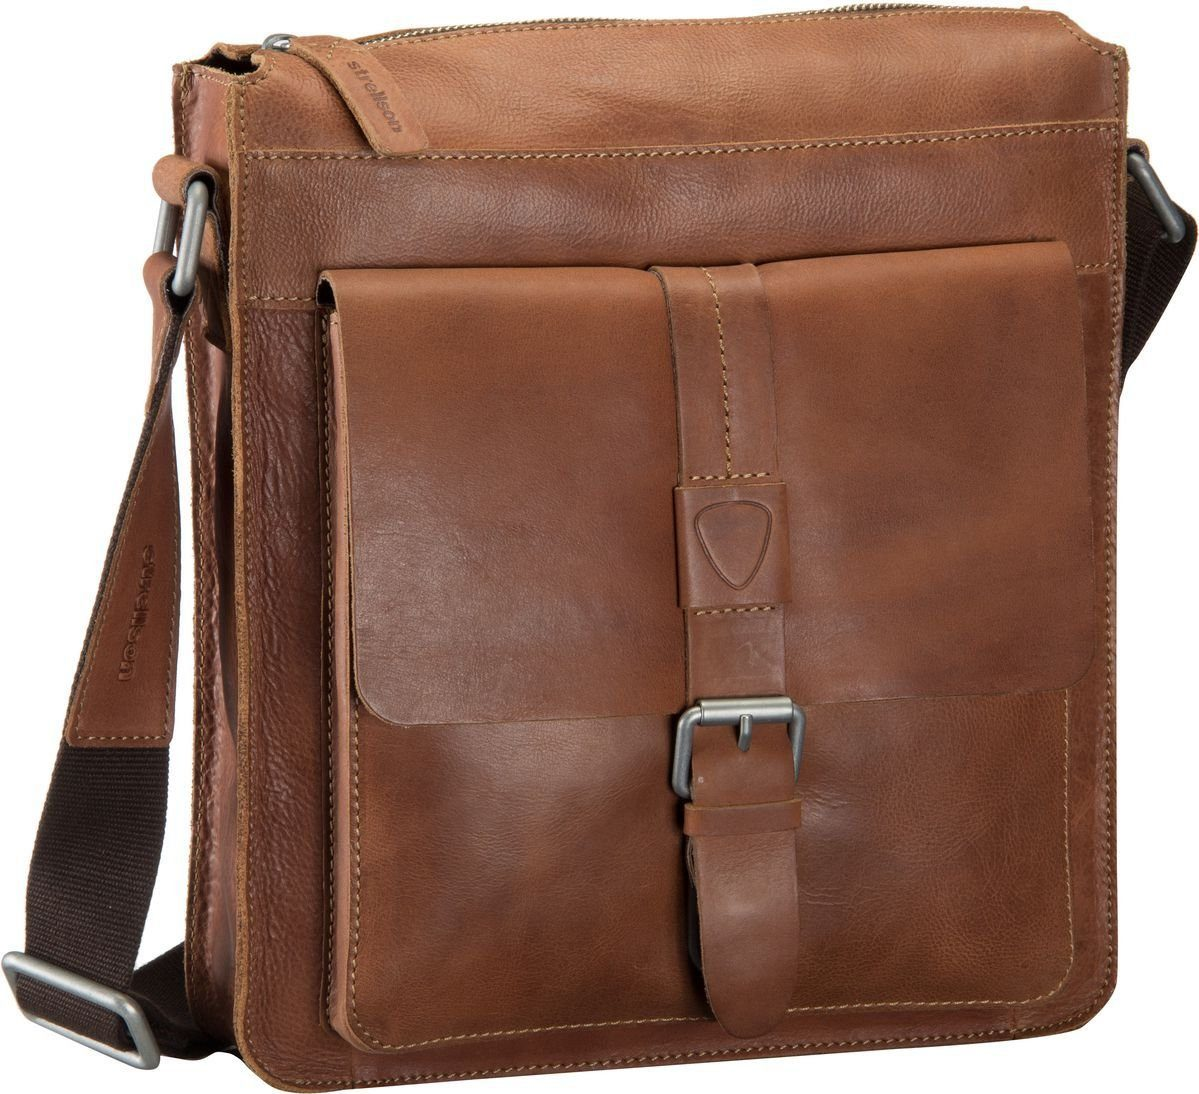 Strellson Blake Shoulderbag SV